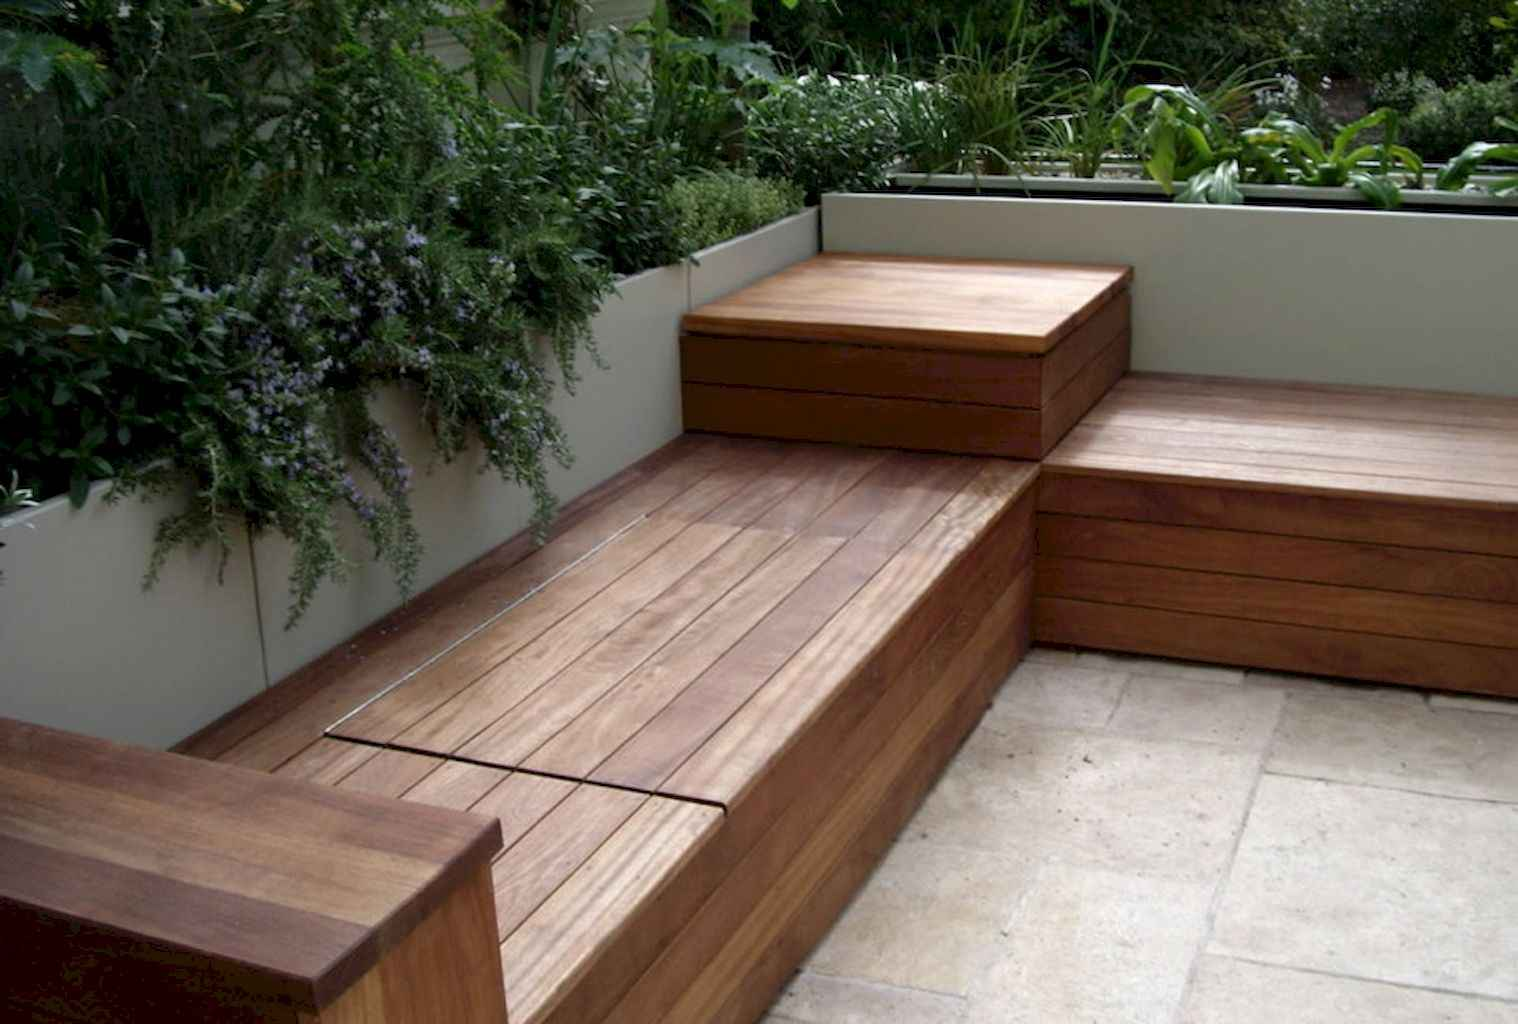 Cleverly diy porch patio decorating ideas (8)